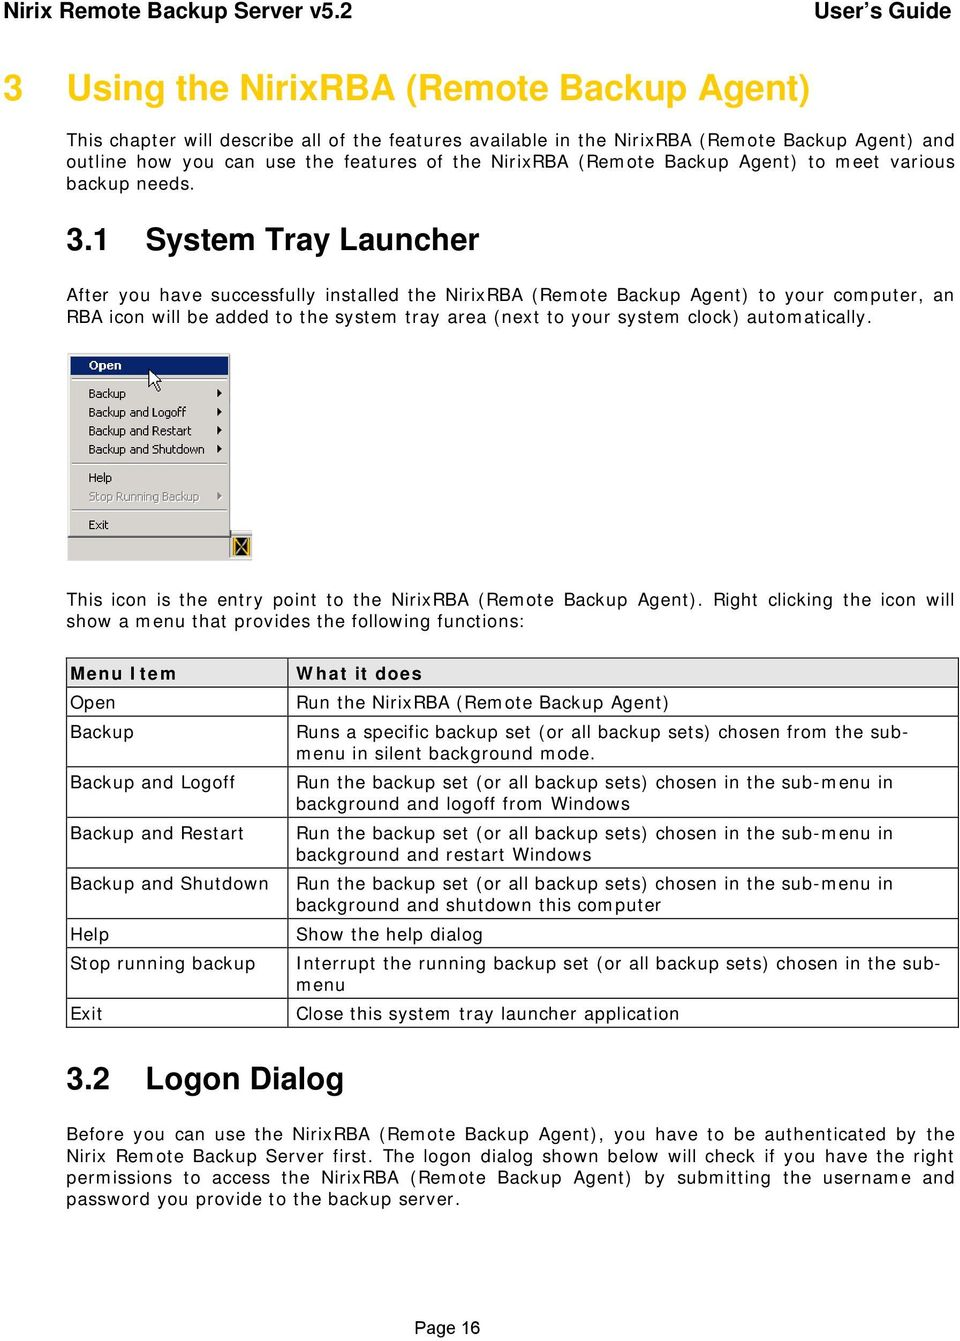 1 System Tray Launcher After you have successfully installed the NirixRBA (Remote Backup Agent) to your computer, an RBA icon will be added to the system tray area (next to your system clock)